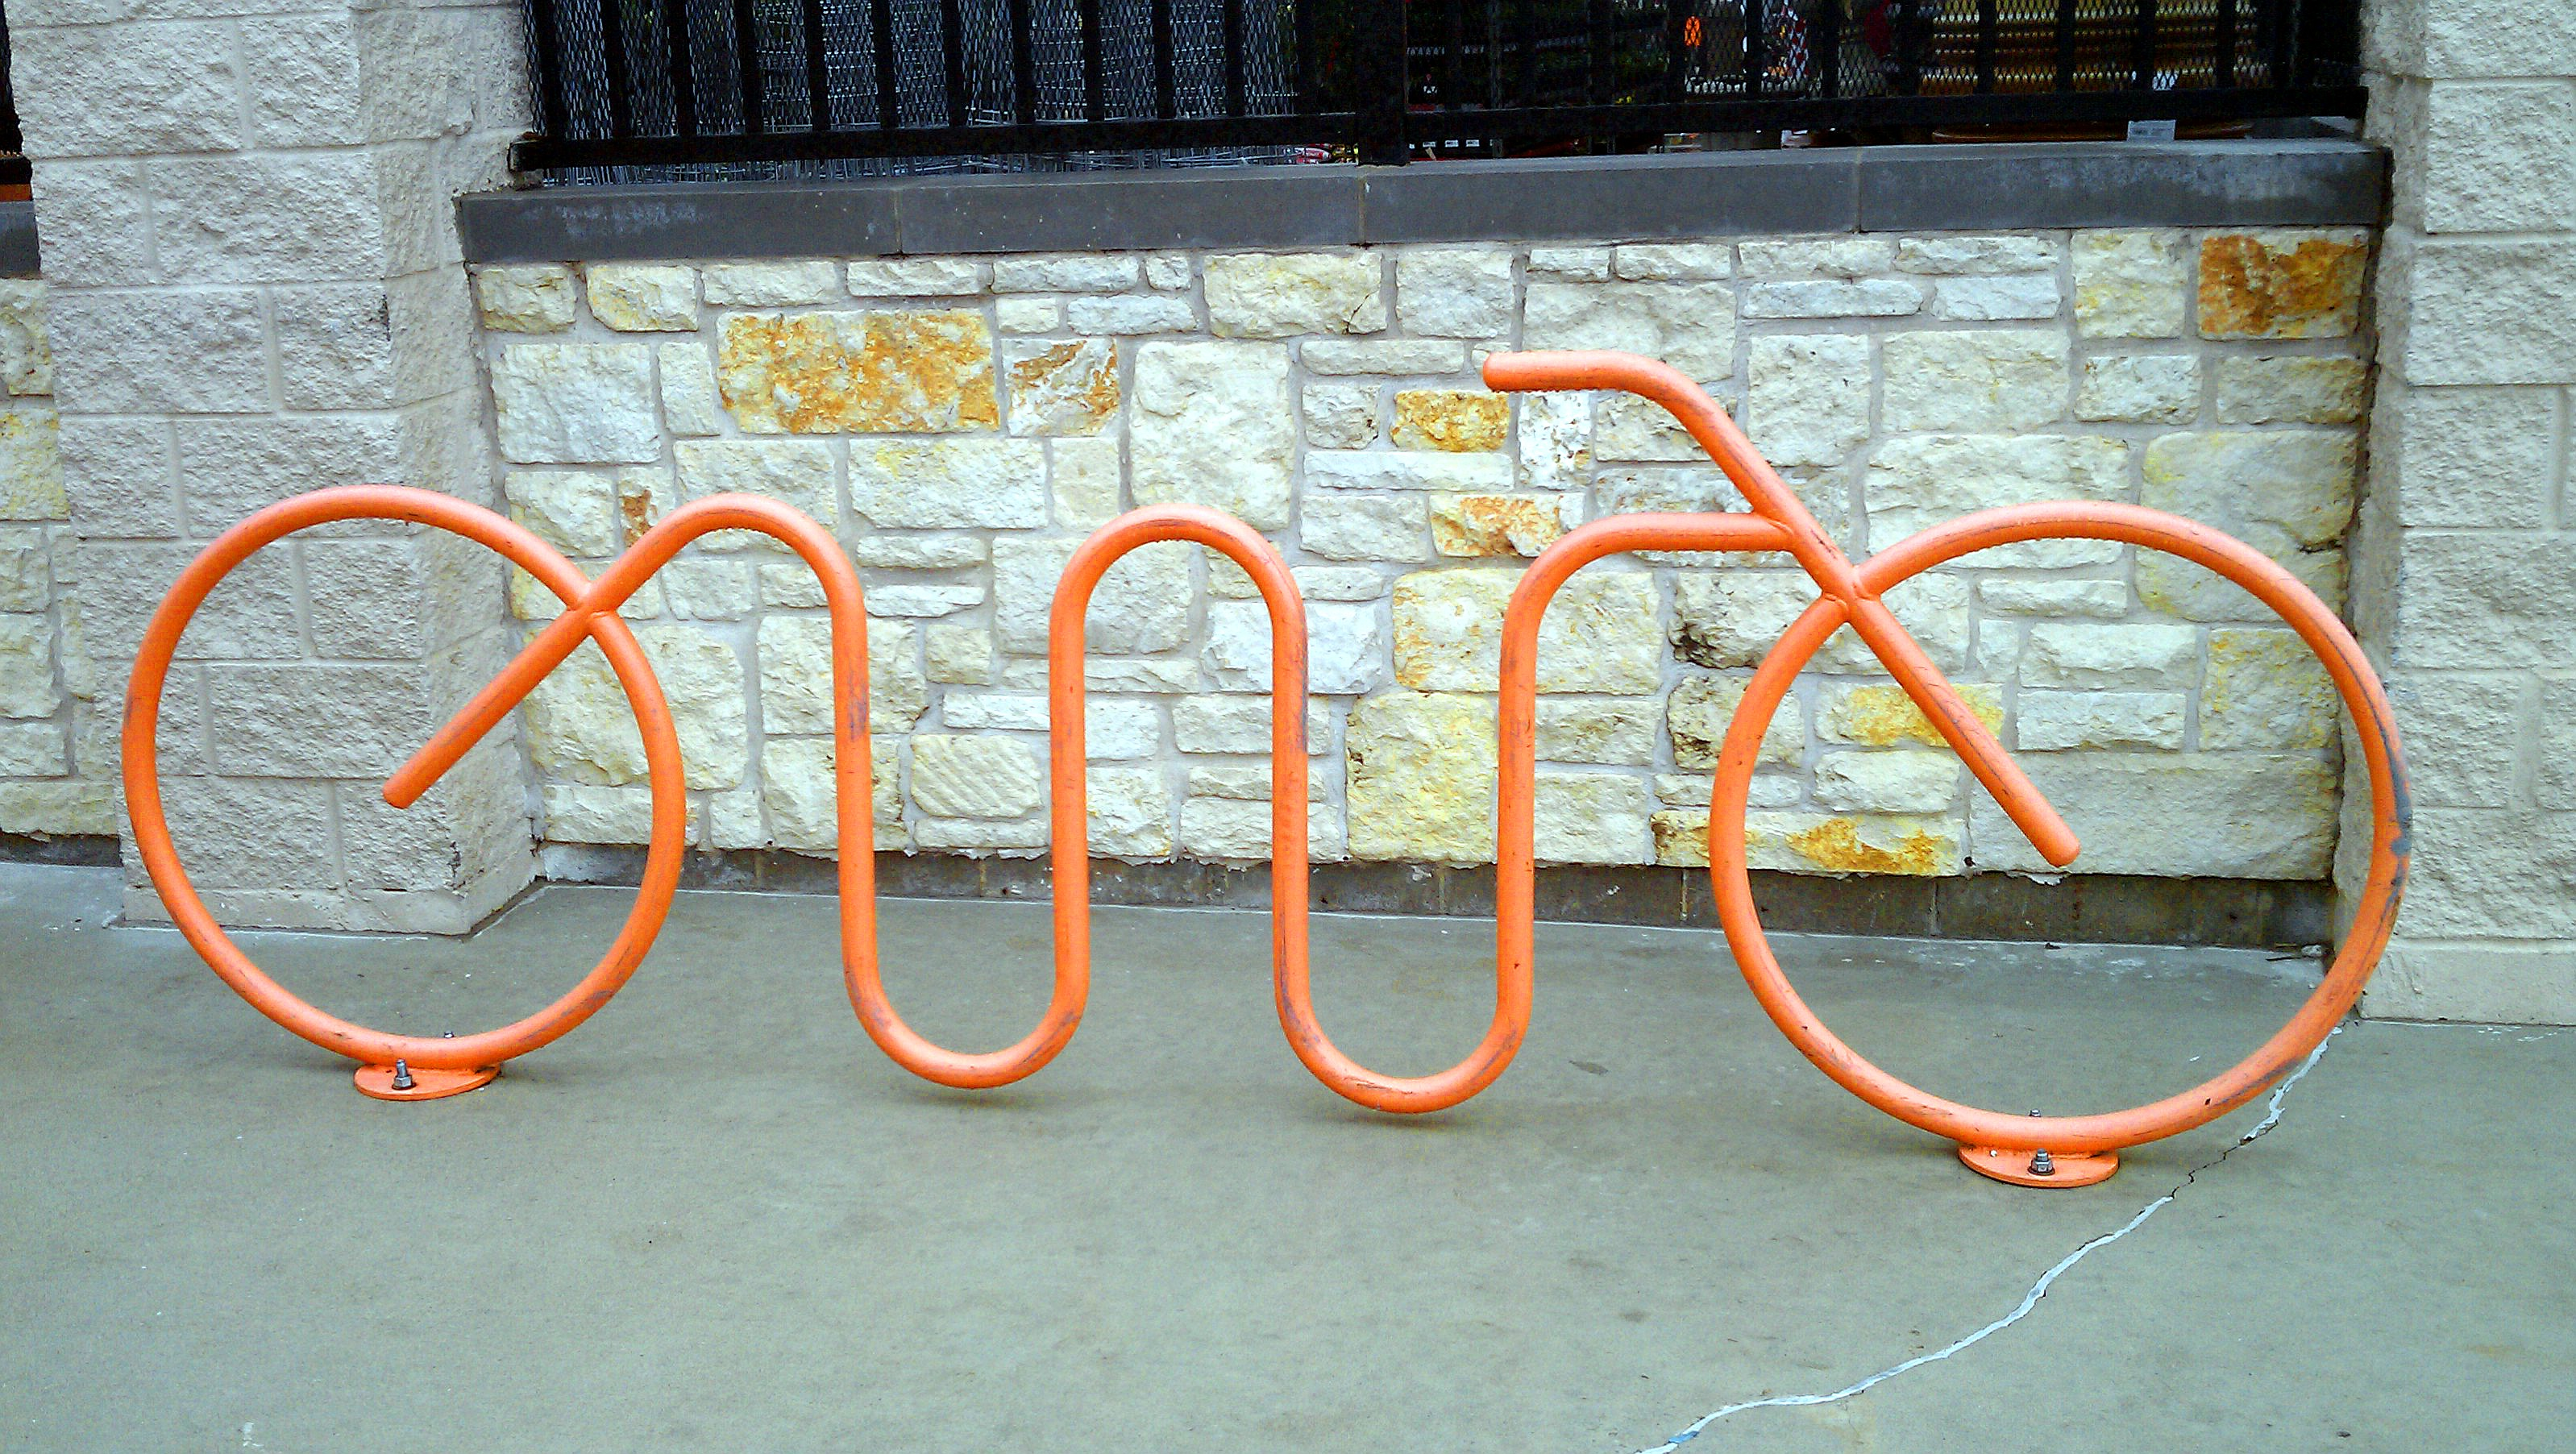 Orange-bike-rack Paint Outside Home Design on home water, home air conditioner, home exteriors, home outside led lights, home outside trim, home colors, home outside garden, home gutters, home outside design, home a/c, home outside lighting,